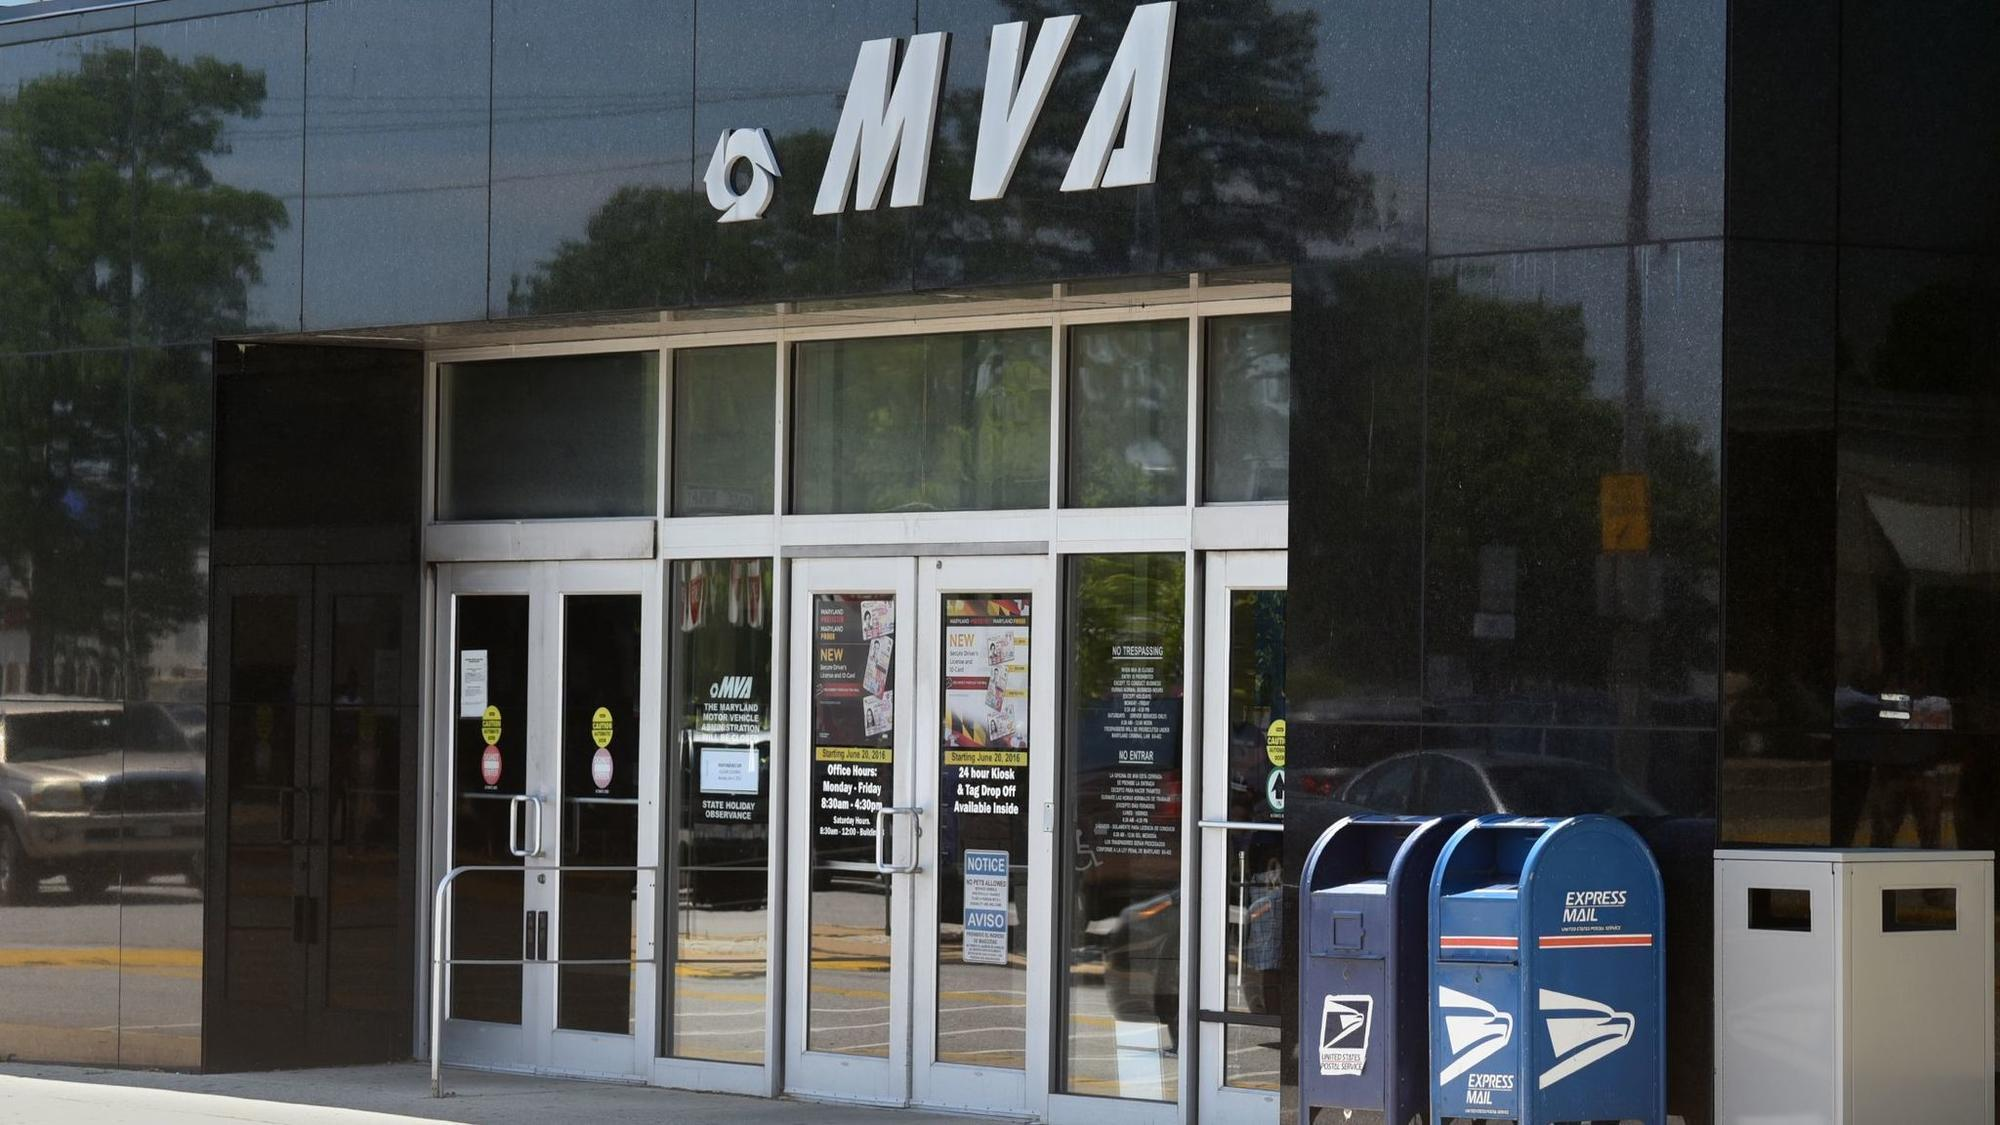 Documents Federal Id With Additional Mva Law Requiring Baltimore Comply - To Real Sun